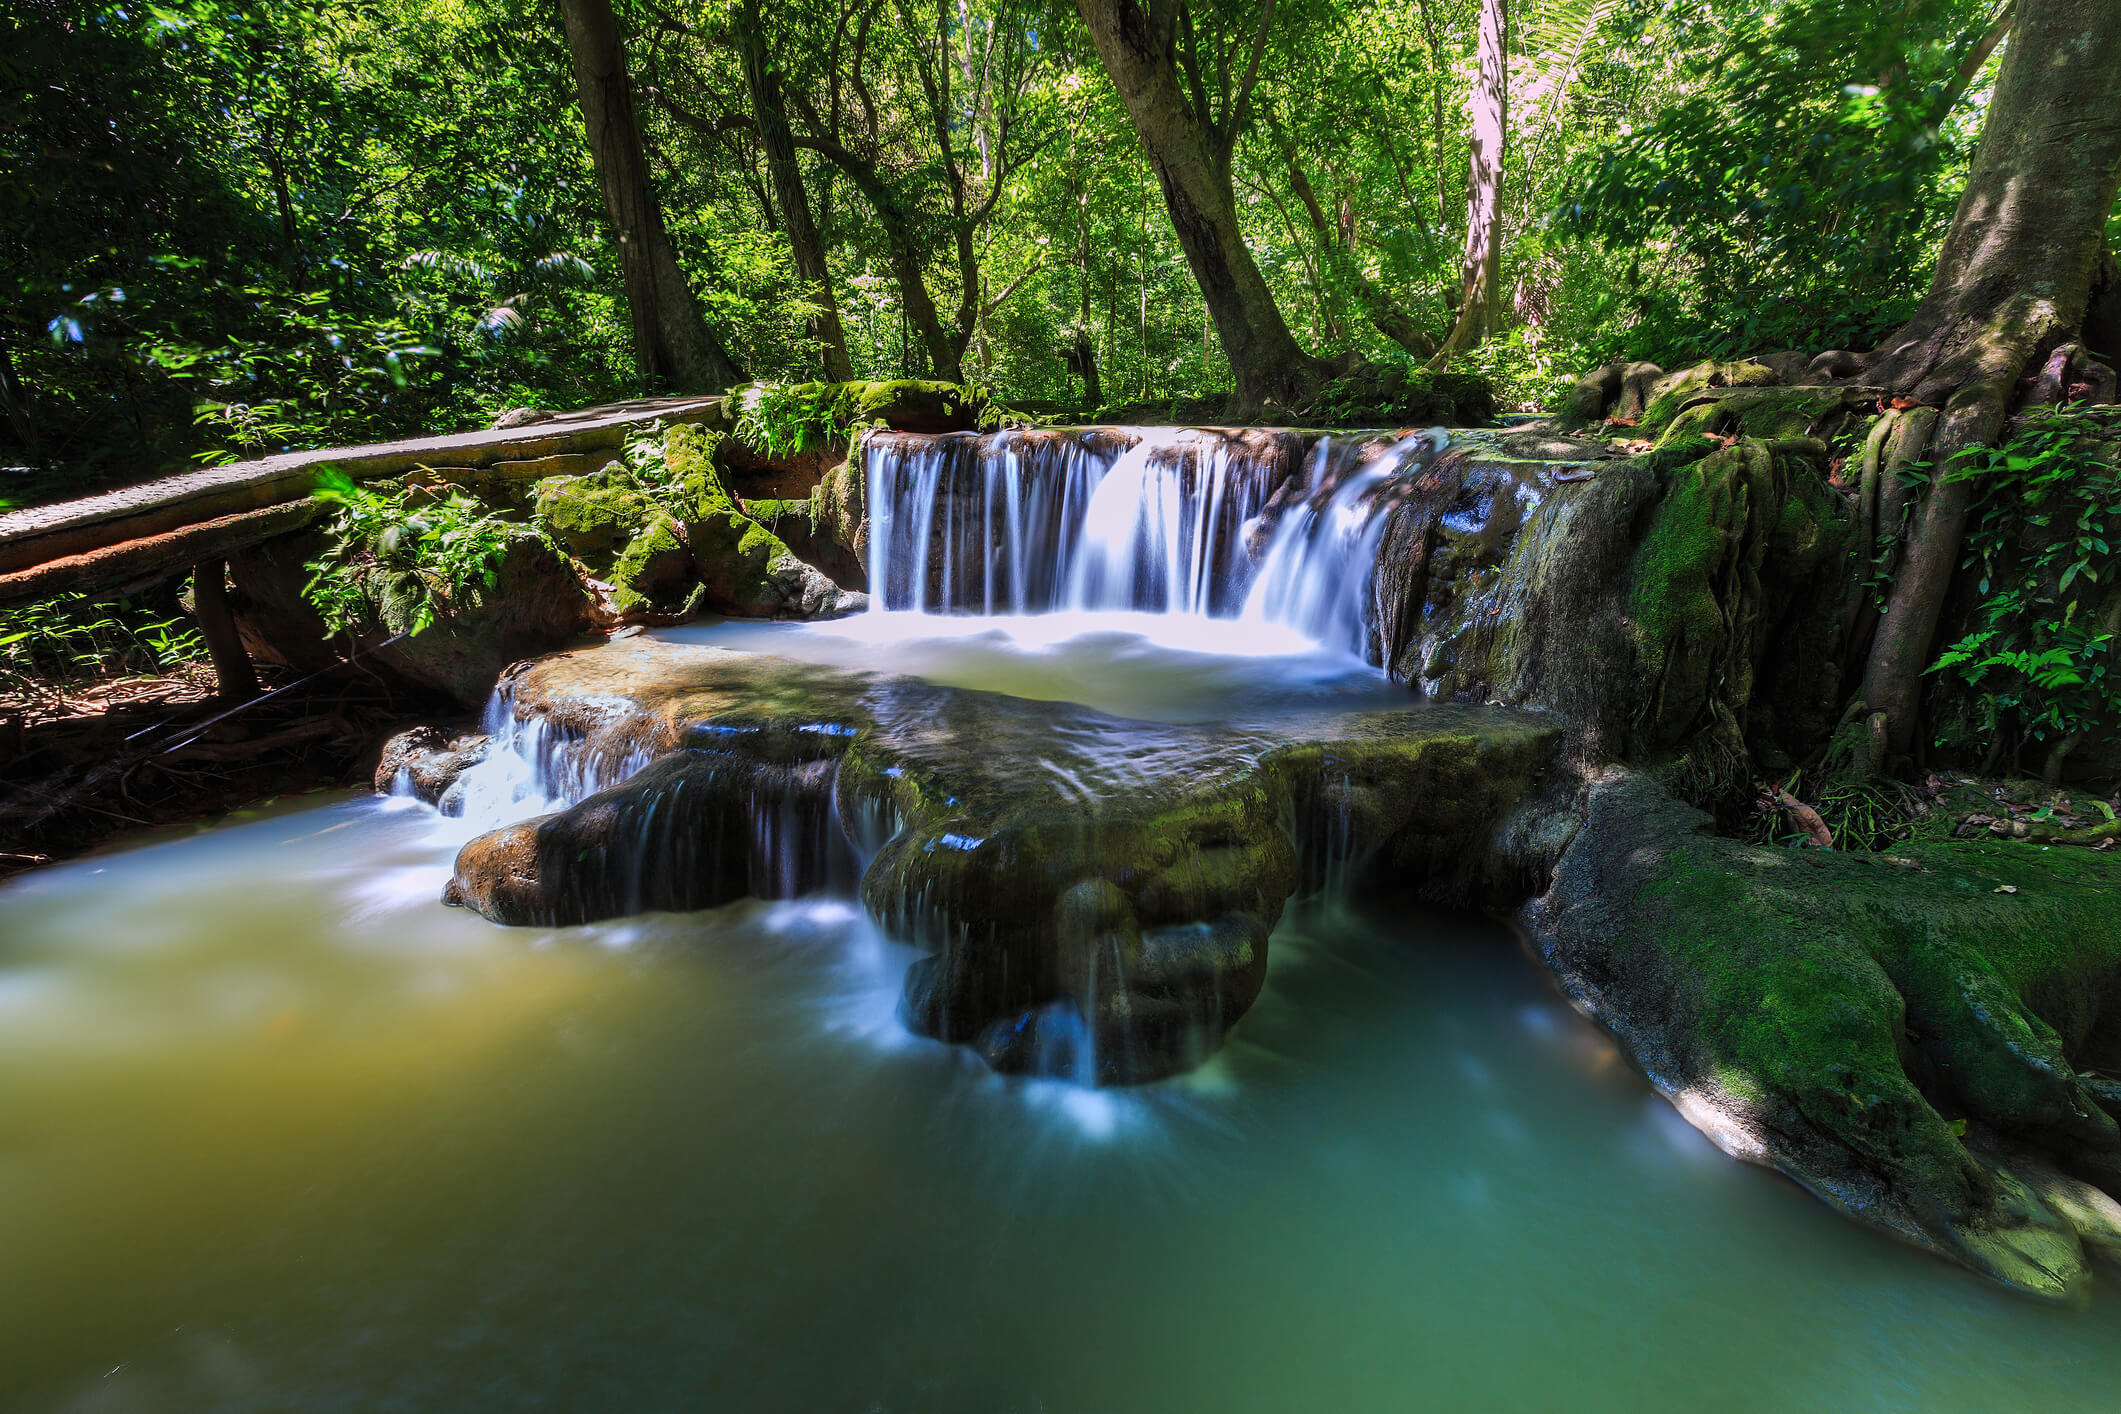 The waterfalls at Than Bak Thorani - places to see in Krabi